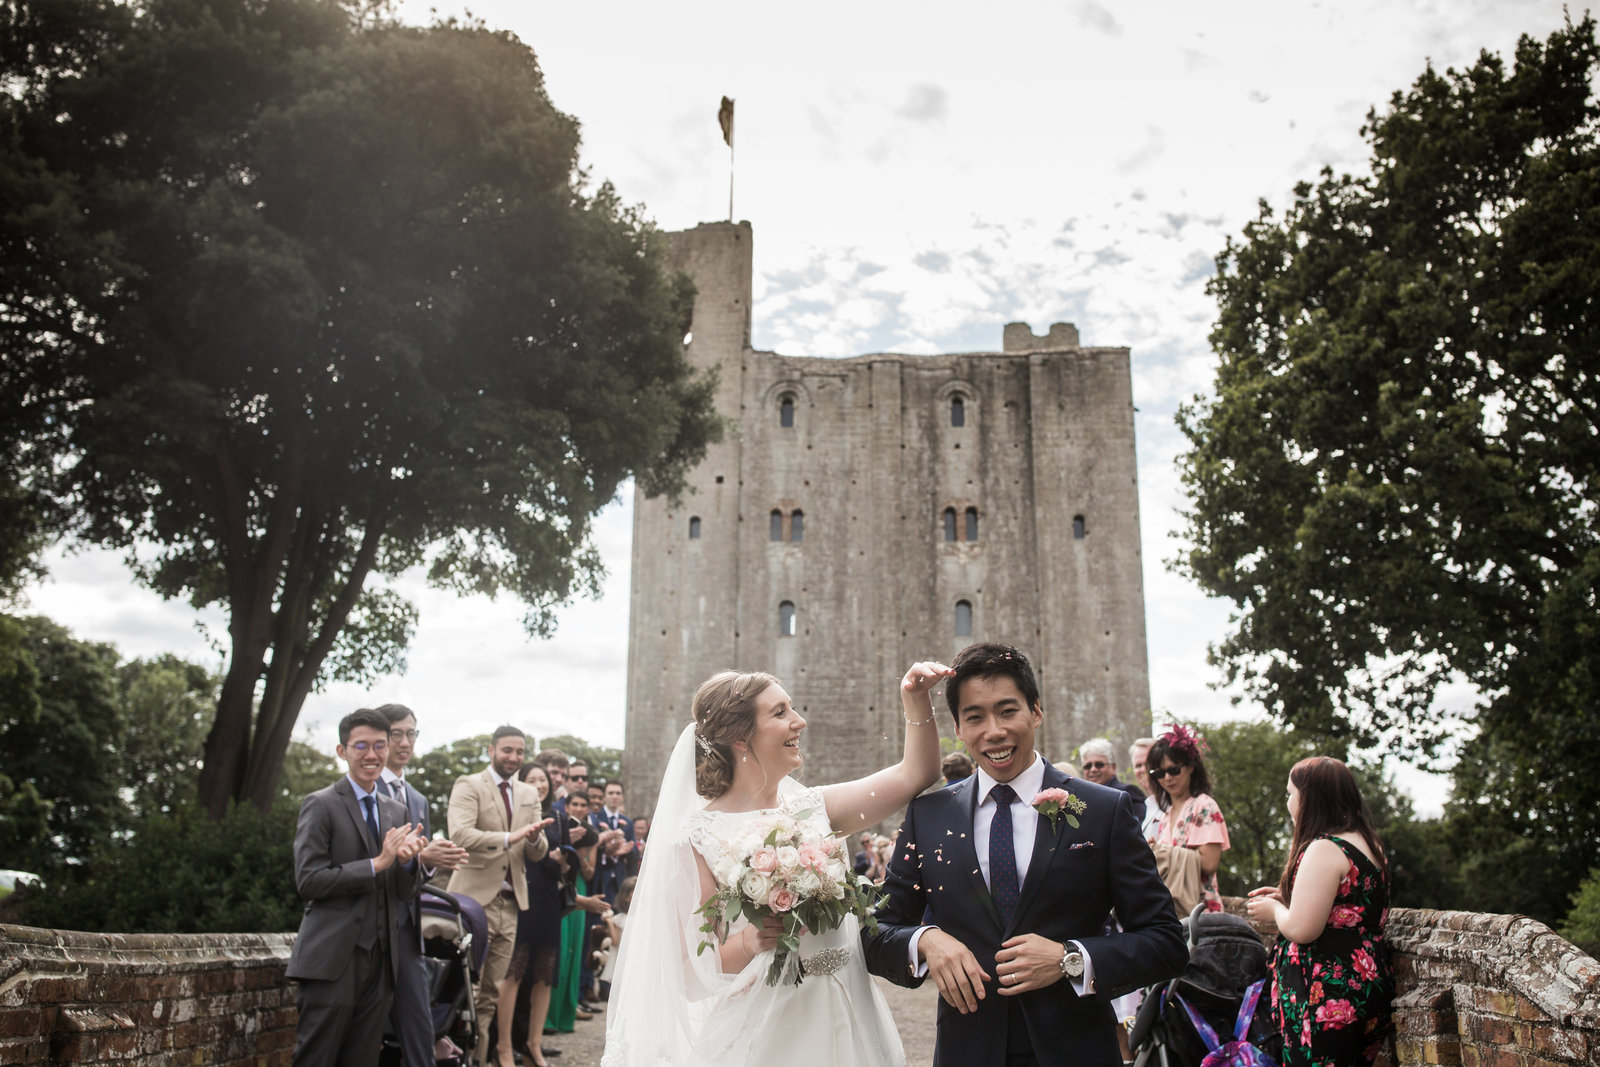 A bride wipes confetti off of her Groom's head as he looks to the camera and smiles. Hedingham castle and wedding guests are in the background.